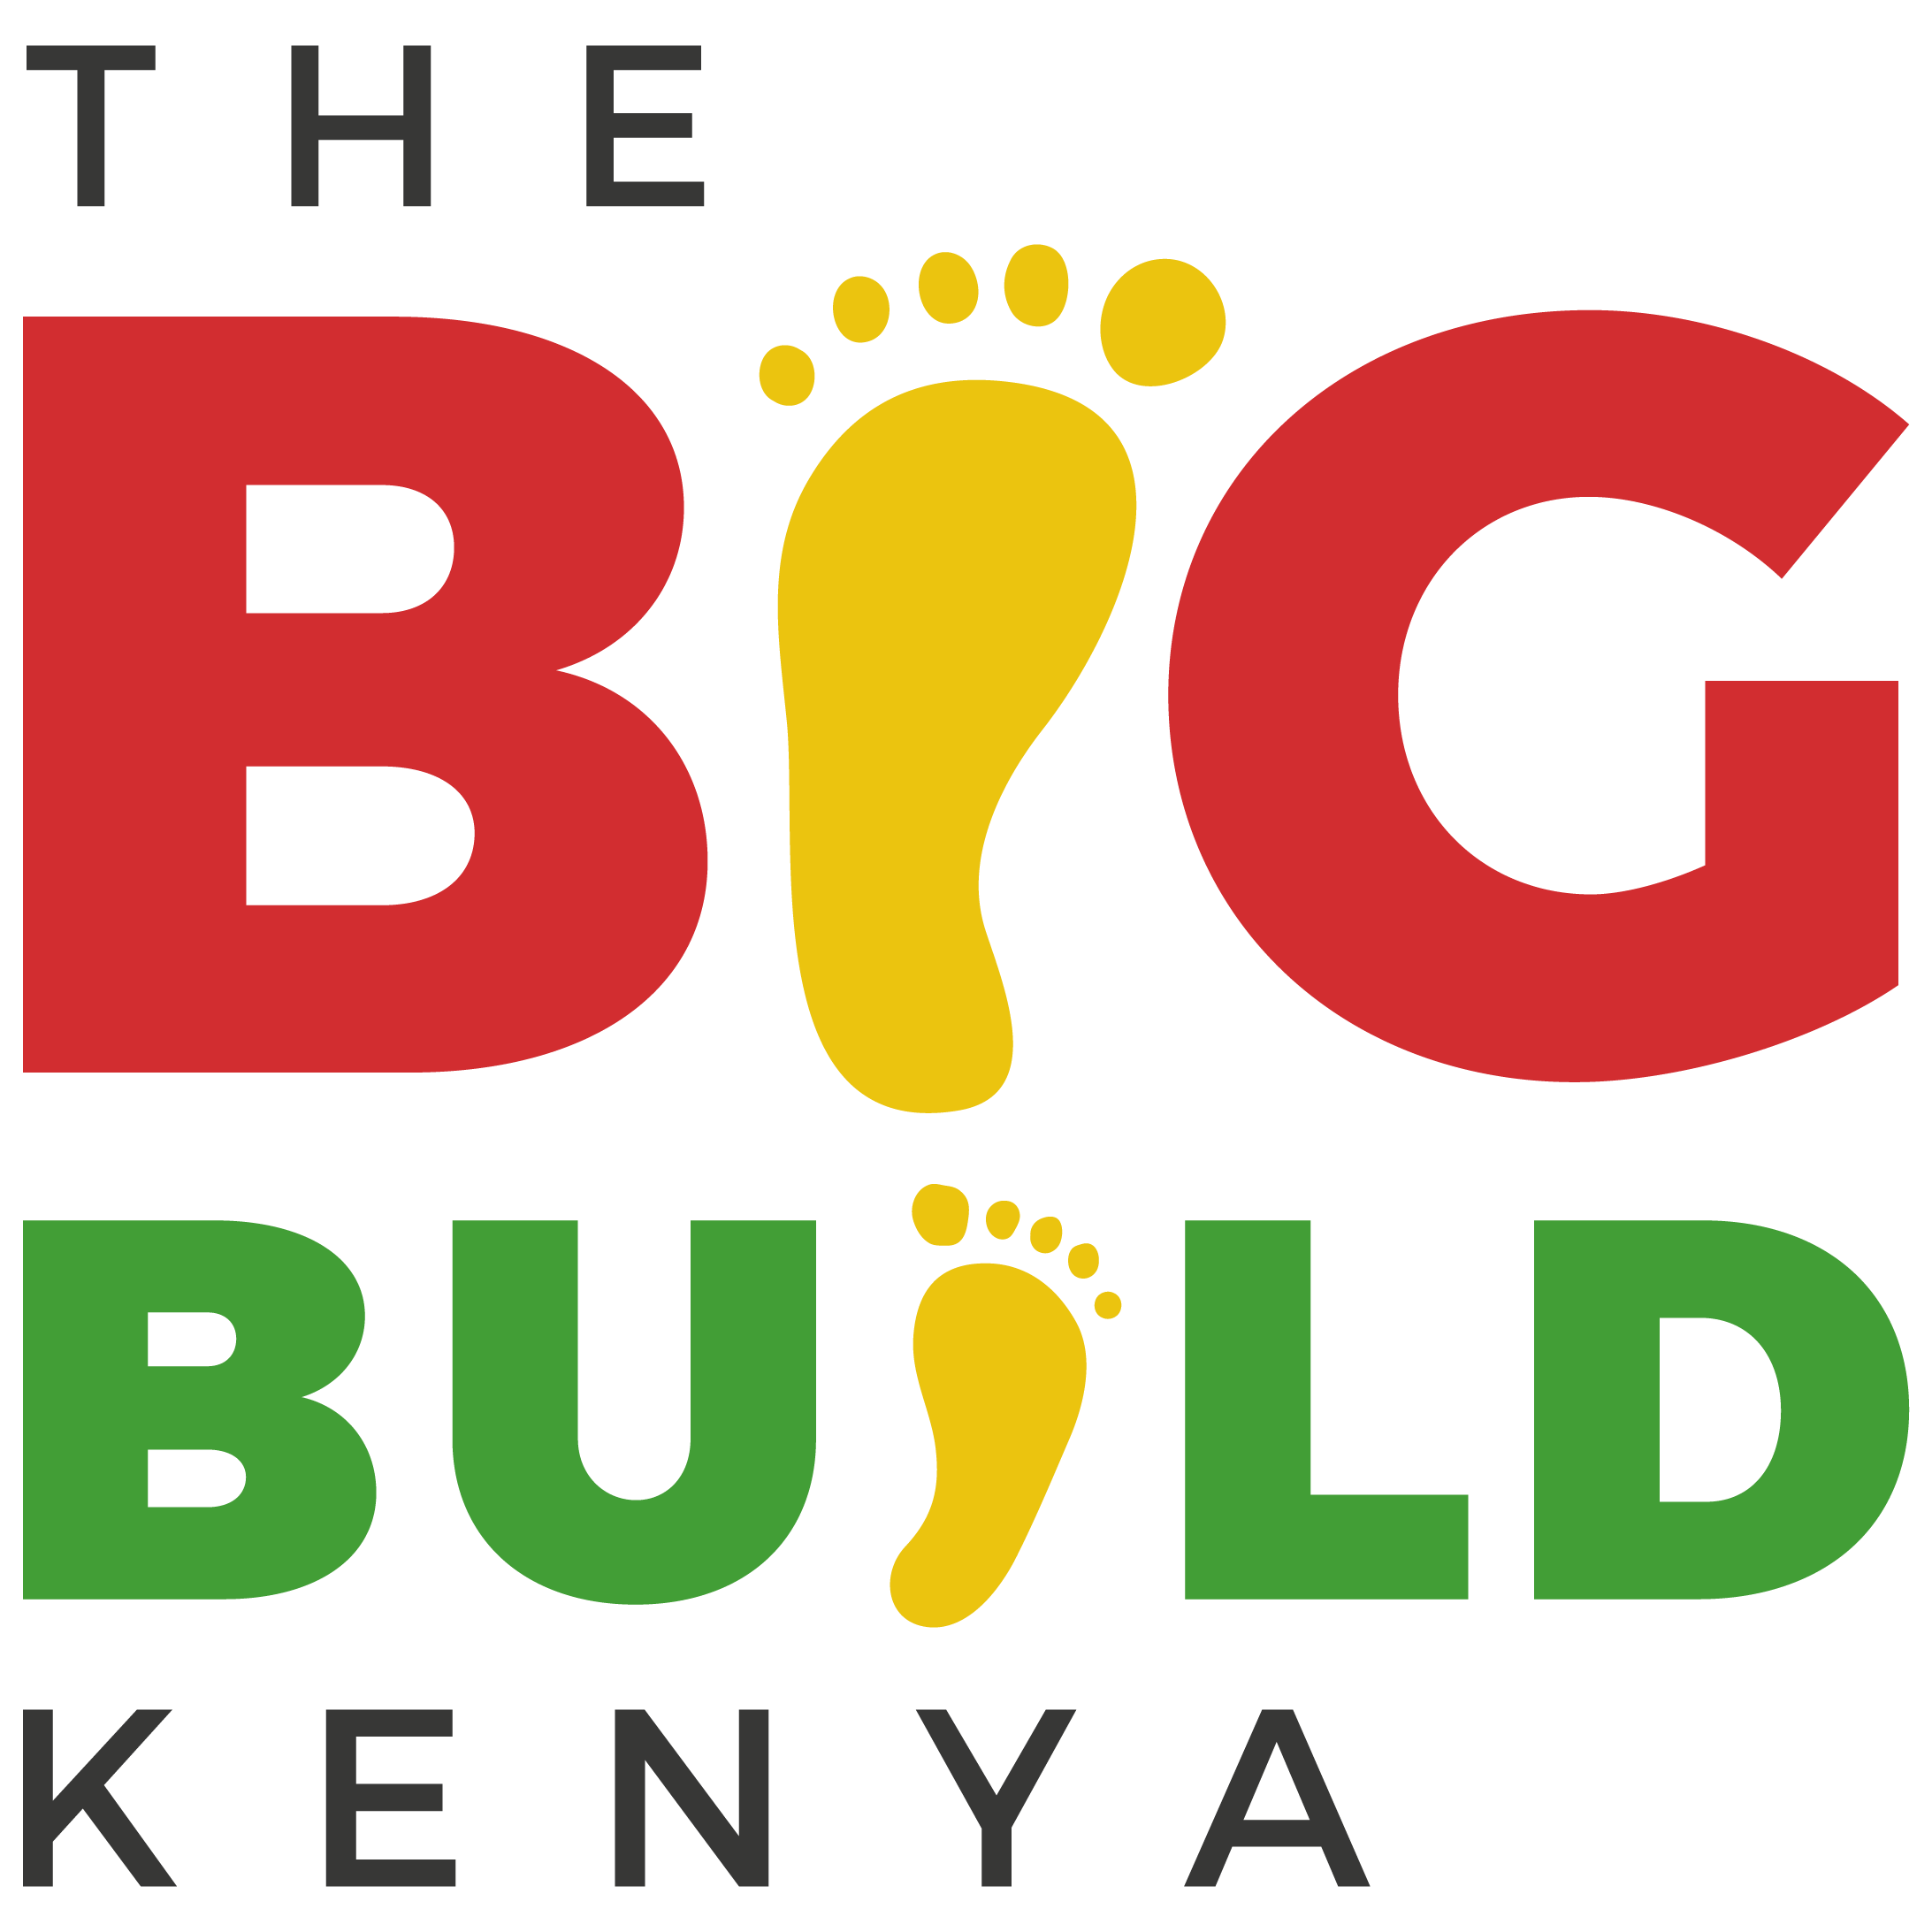 African Adventures Foundation The Big Build Kenya Campaign